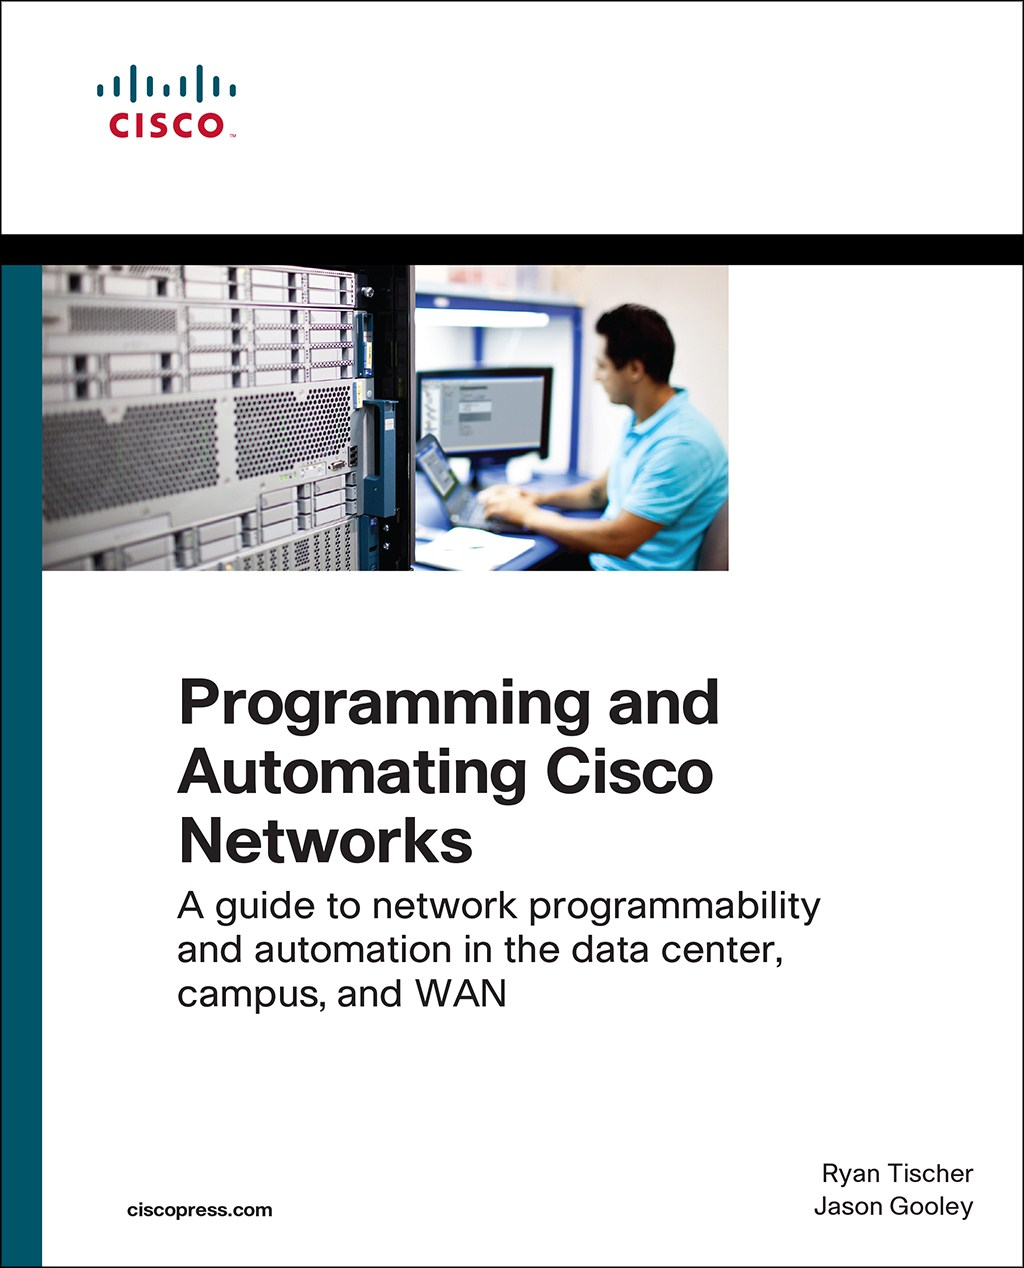 Programming and Automating Cisco Networks: A guide to network programmability and automation in the data center, campus, and WAN